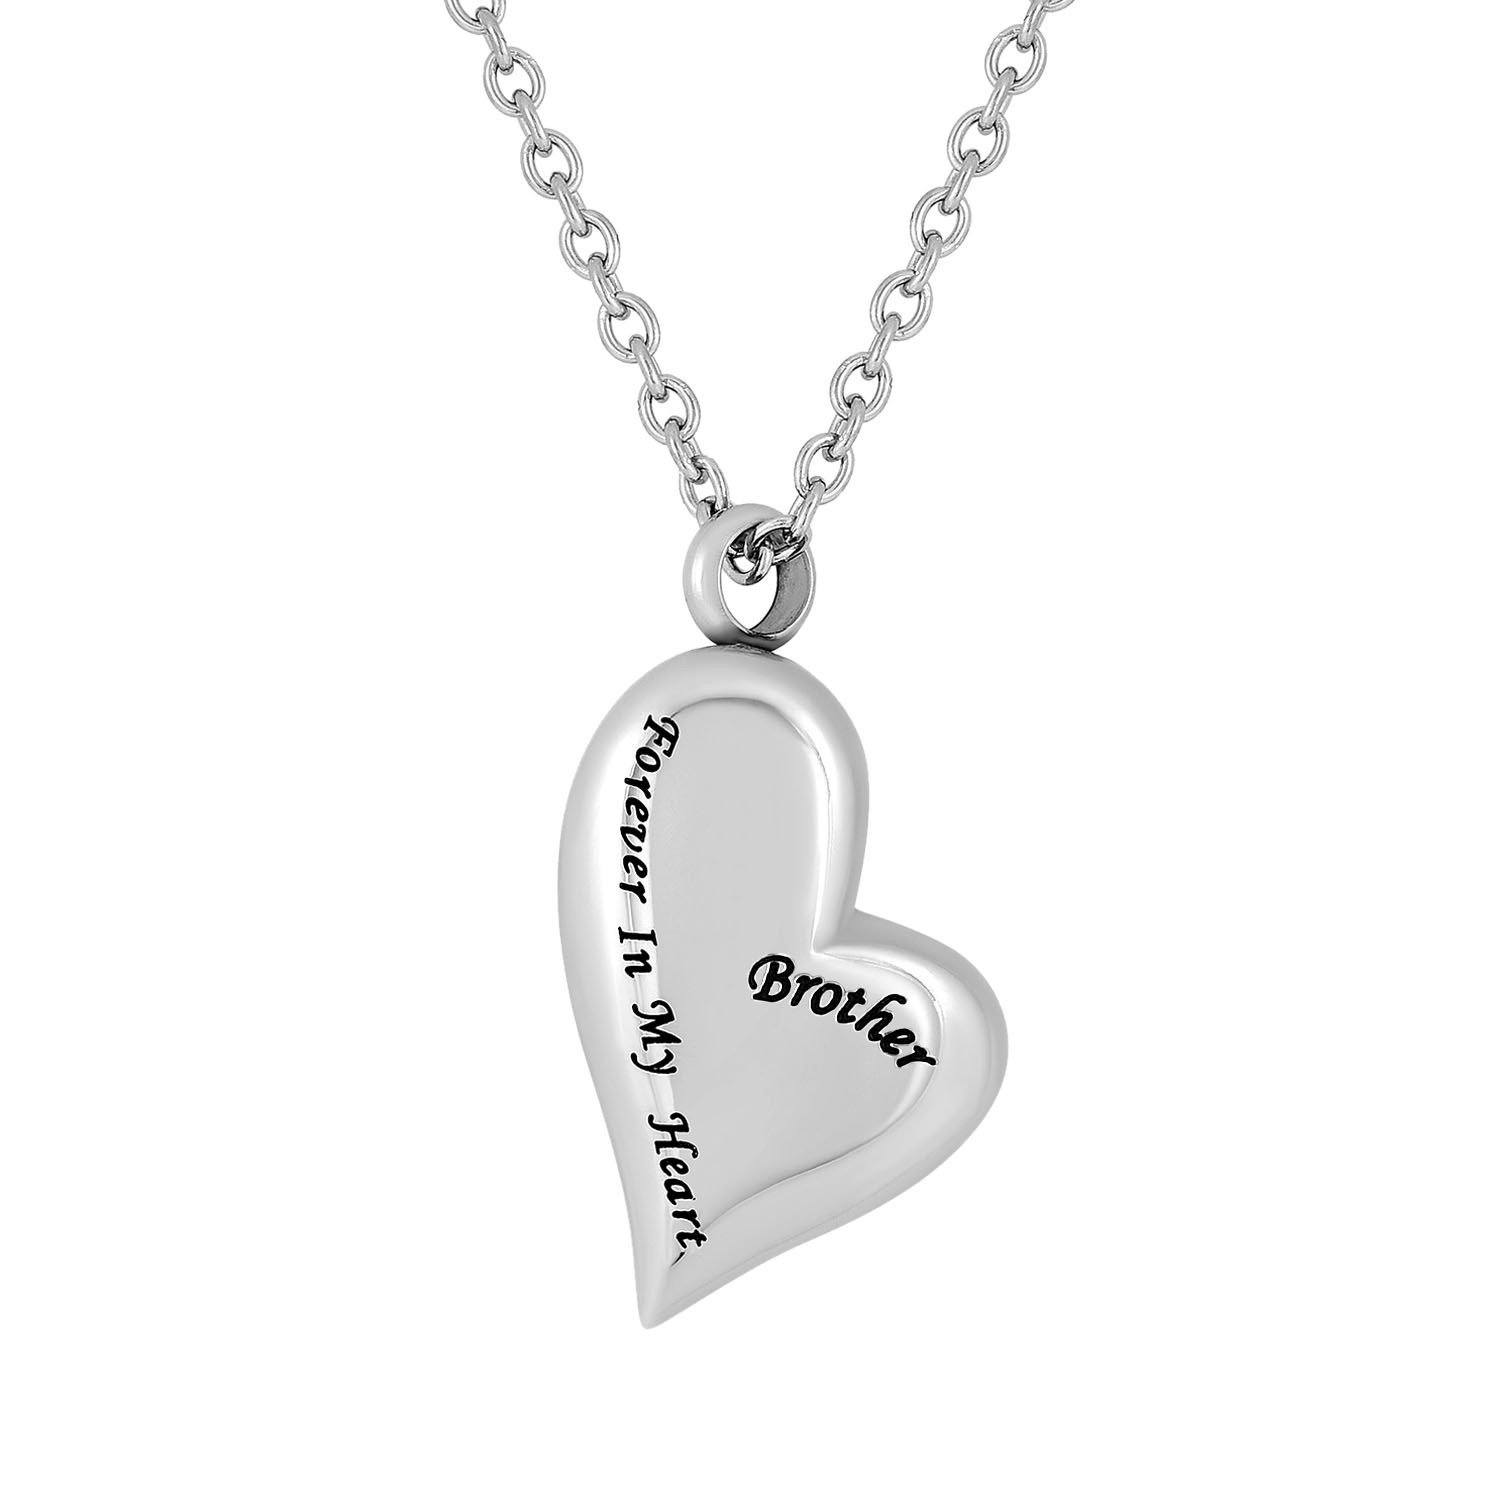 jewelry silver essentials london necklace heart amp pave sterling diamond of jewellery en and hires links gb